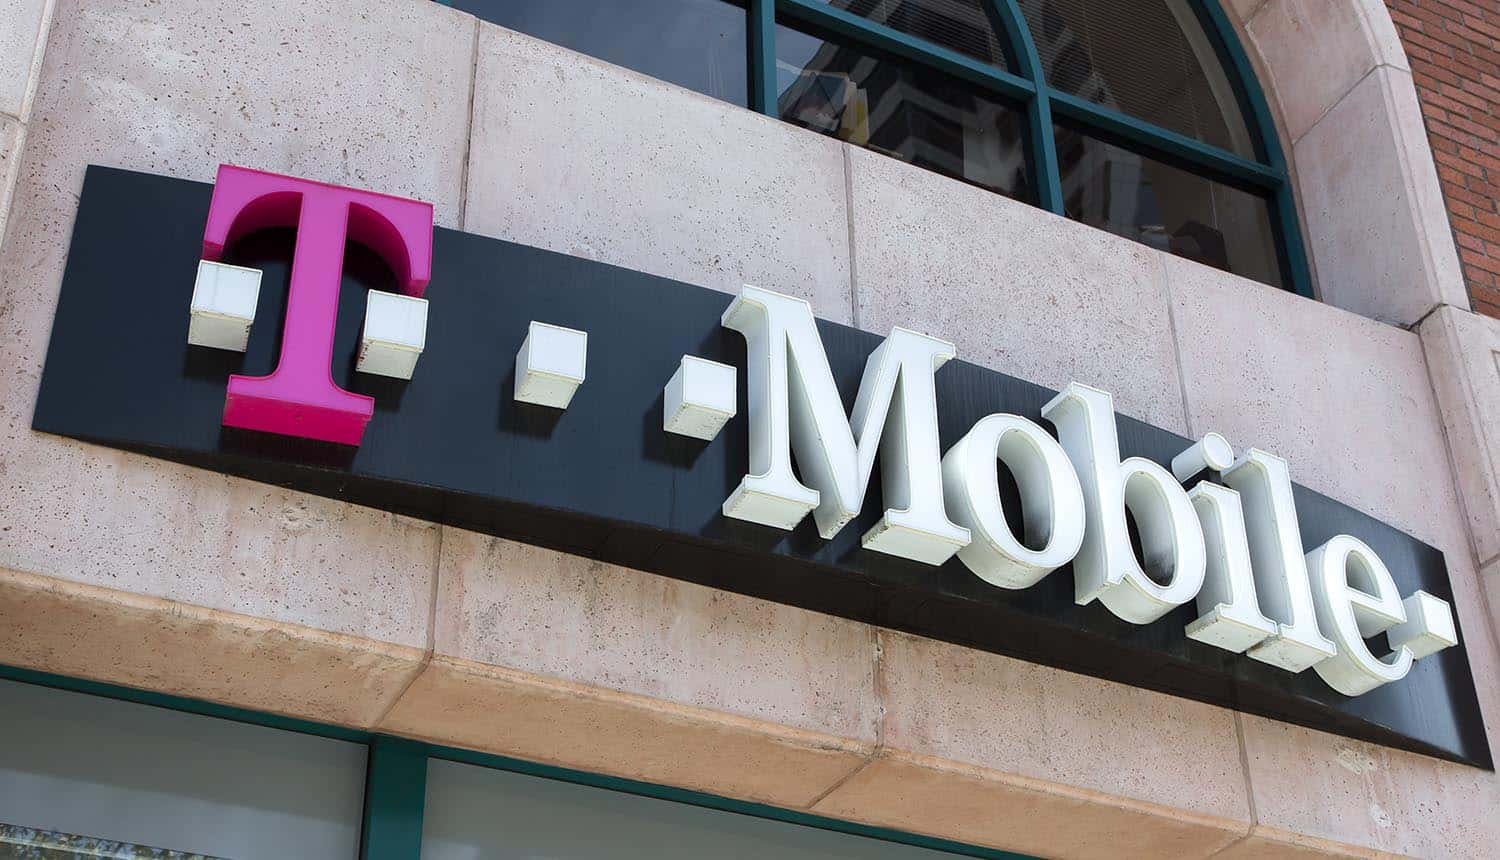 T-Mobile store exterior and sign showing second data breach